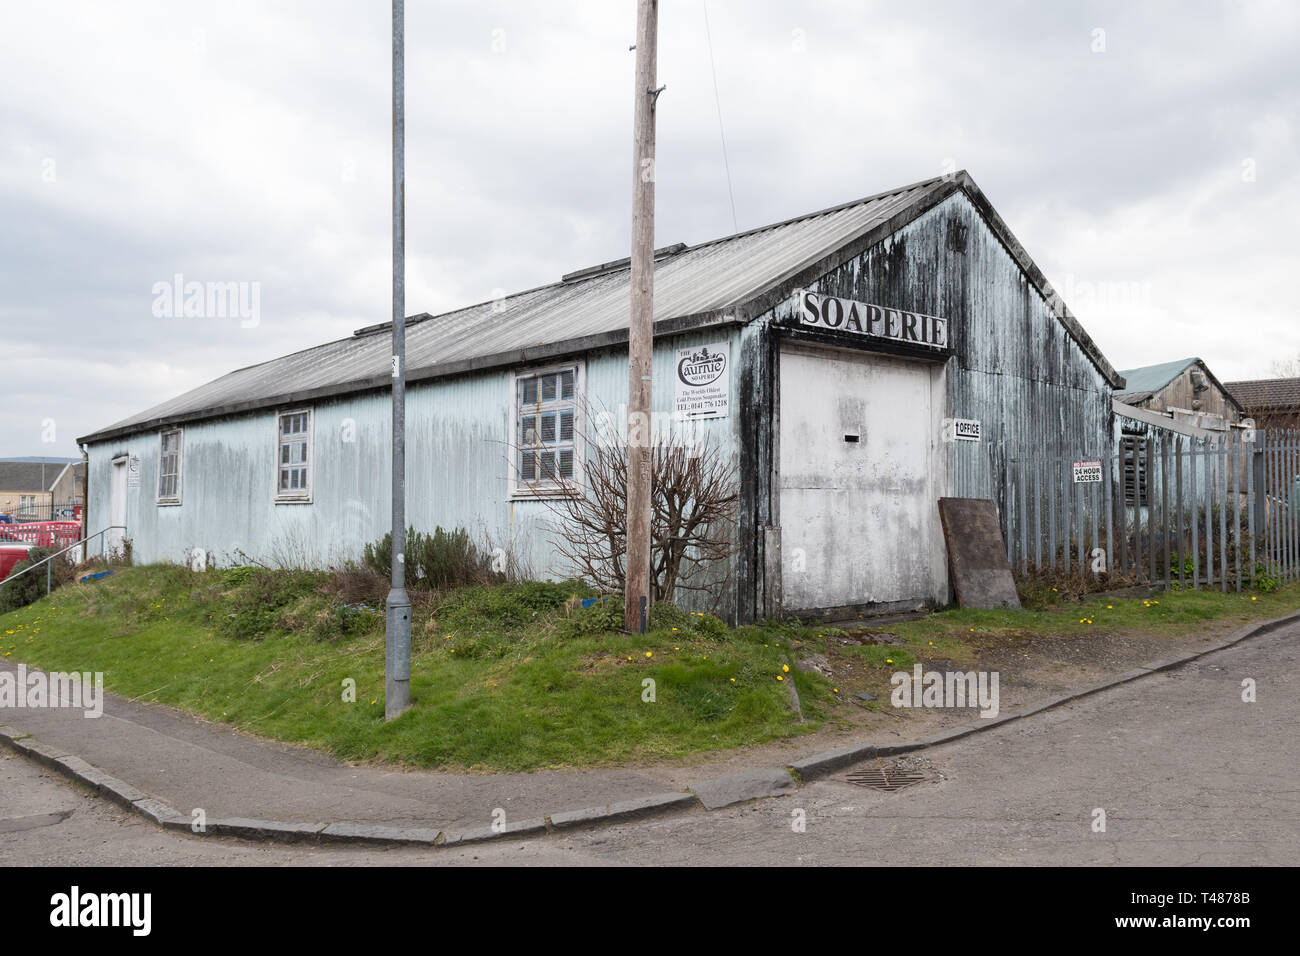 The Caurnie Soaperie - the worlds oldest cold process soapmaker - Kirkintilloch, Scotland, UK Stock Photo